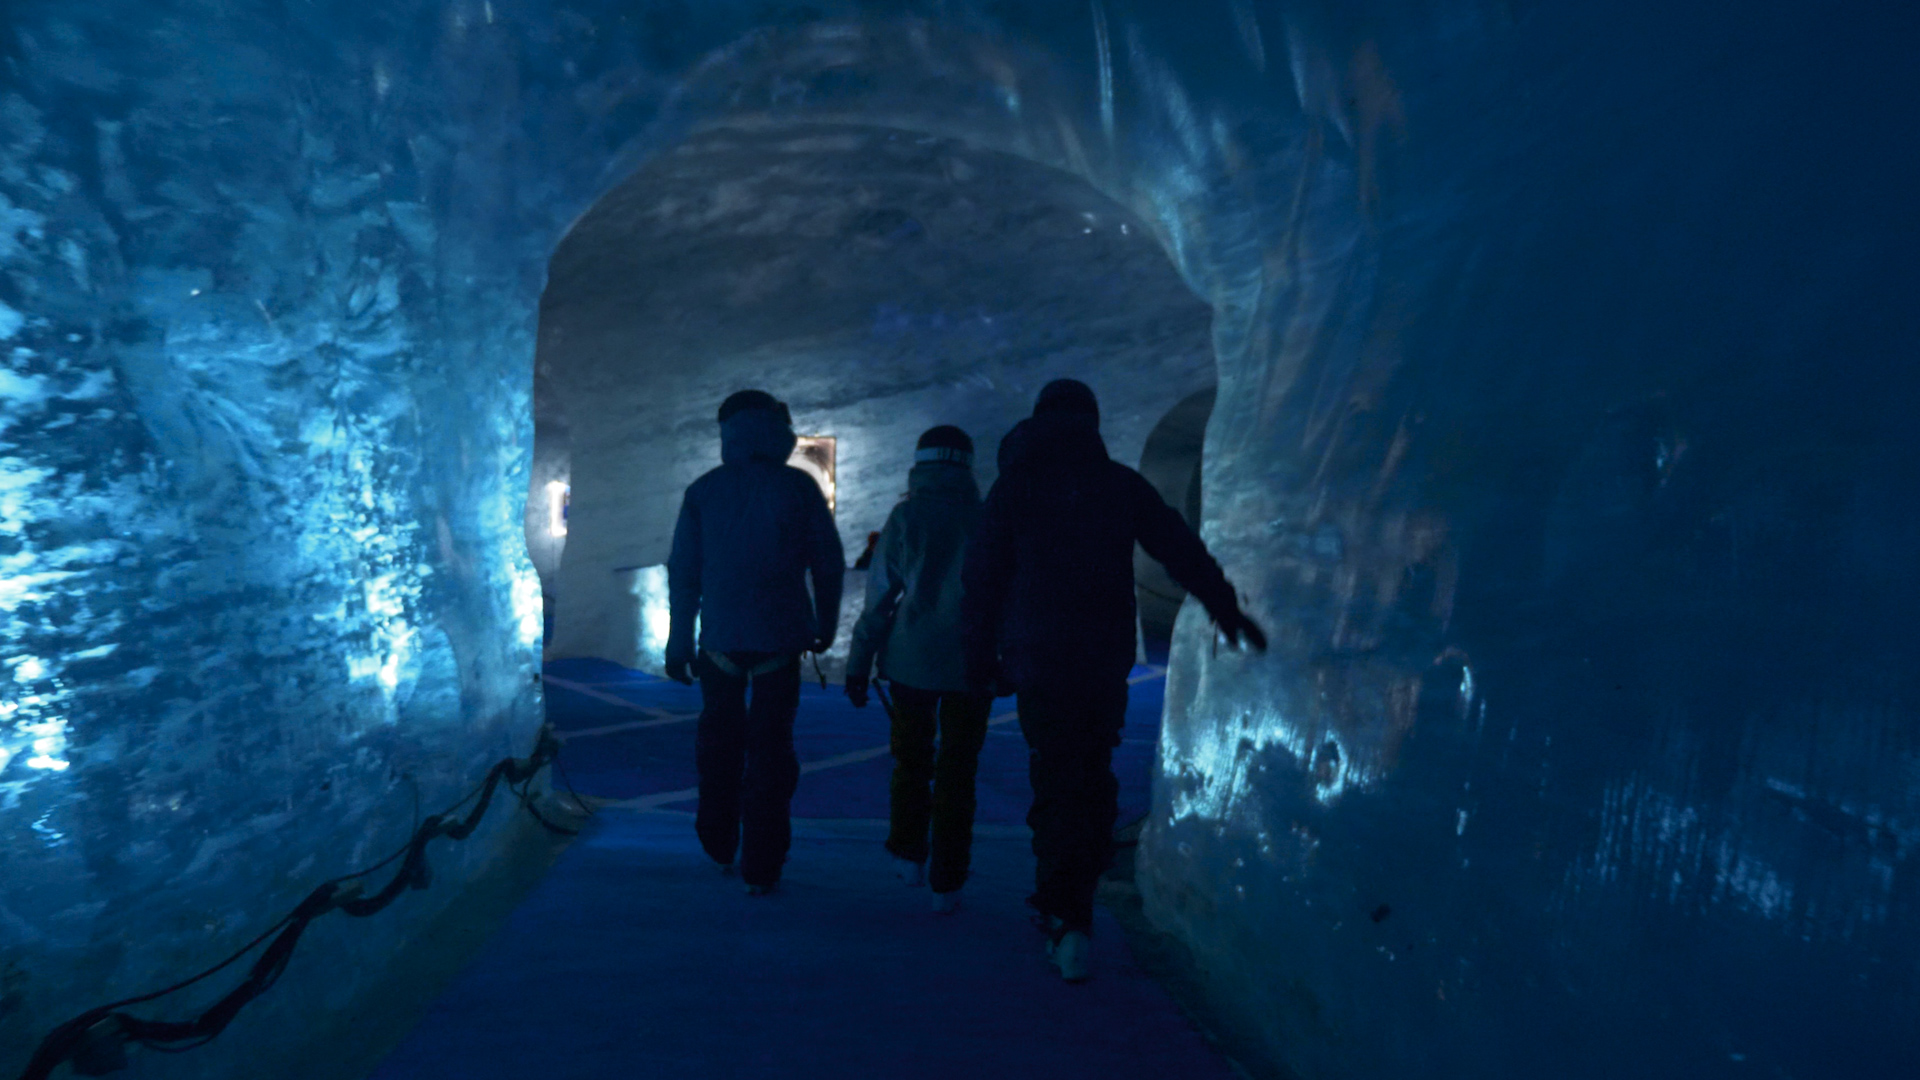 Three skiers walk through a cave of blue ice on their way back from the Vallee Blanche